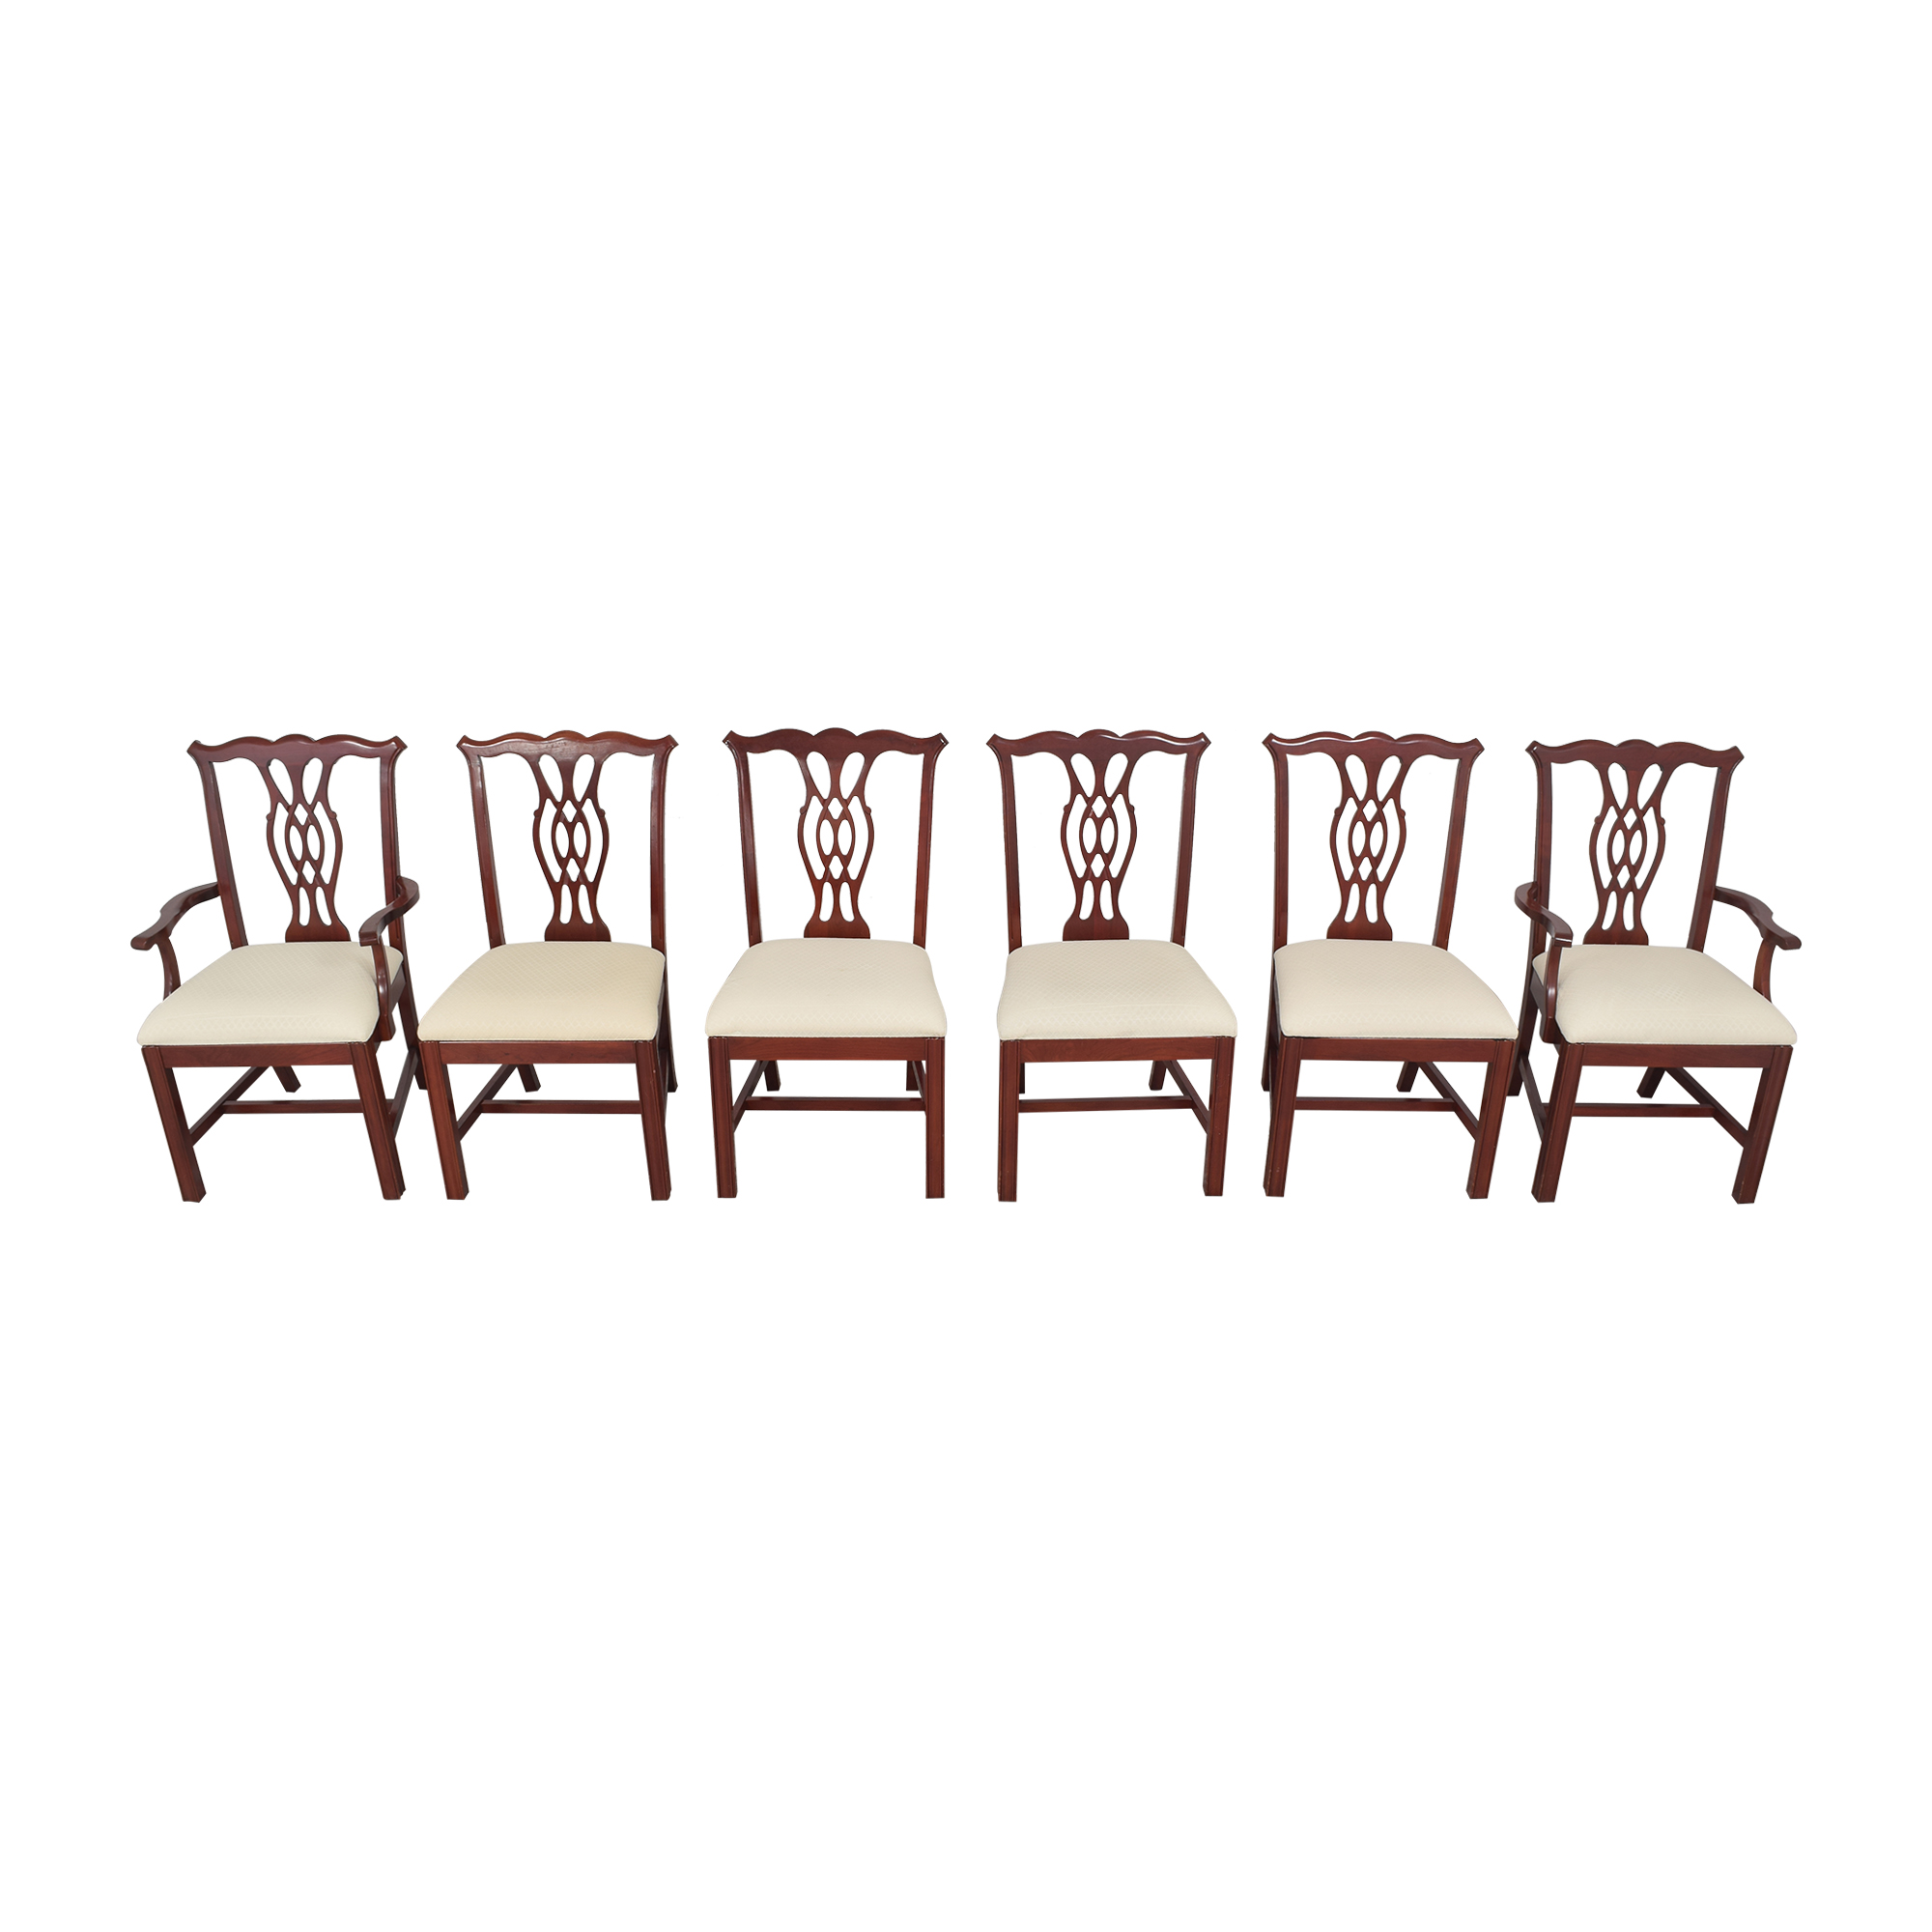 The Colonial Furniture Company The Colonial Furniture Company Chippendale-Style Dining Chairs dimensions